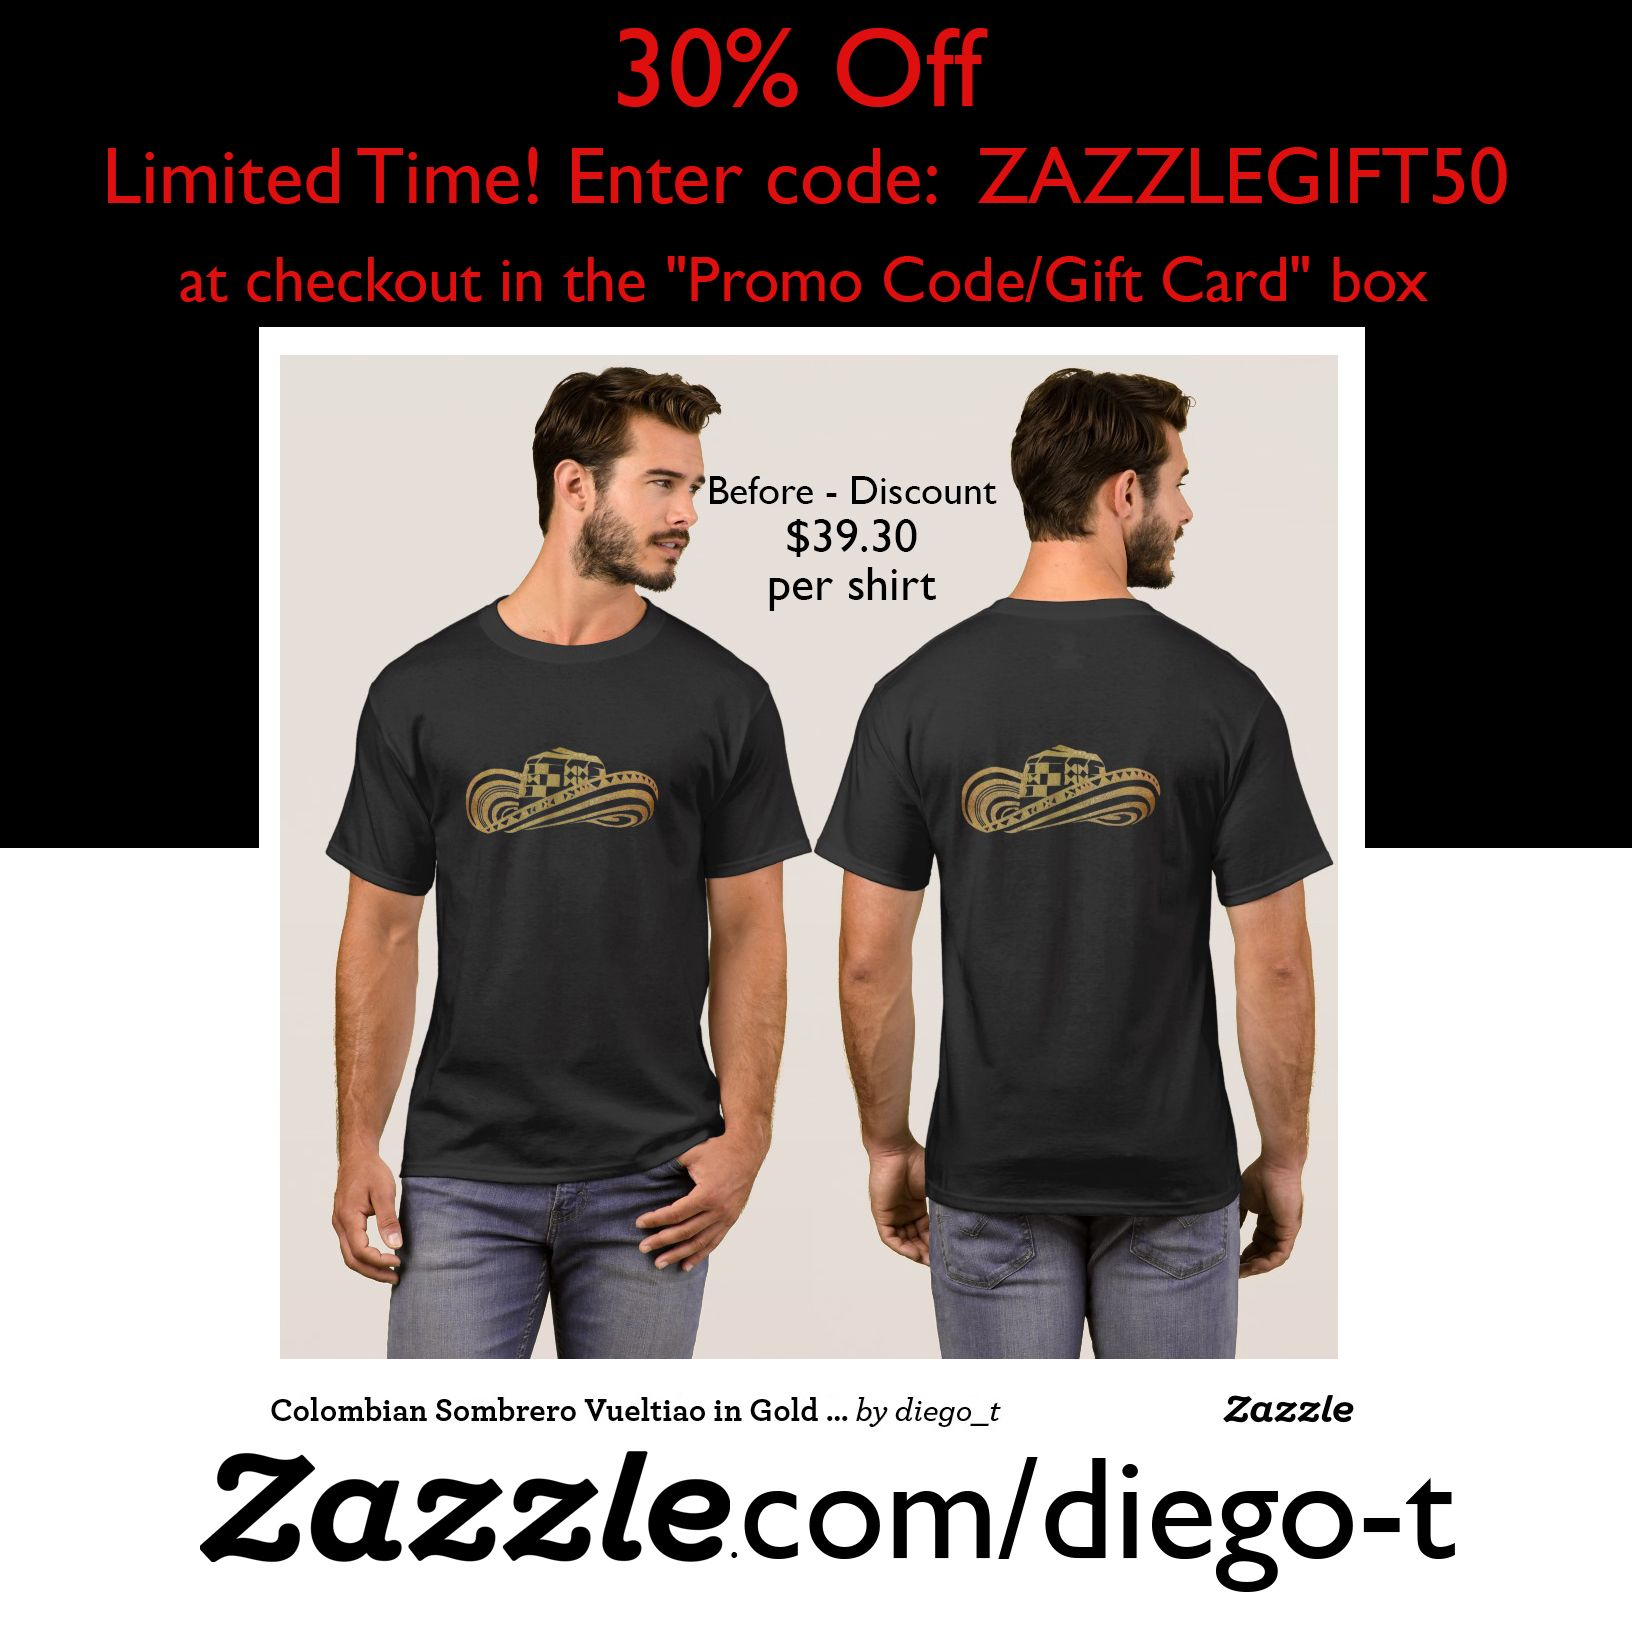 Colombian Sombrero Vueltiao in Gold Leaf T Shirt Zazzle